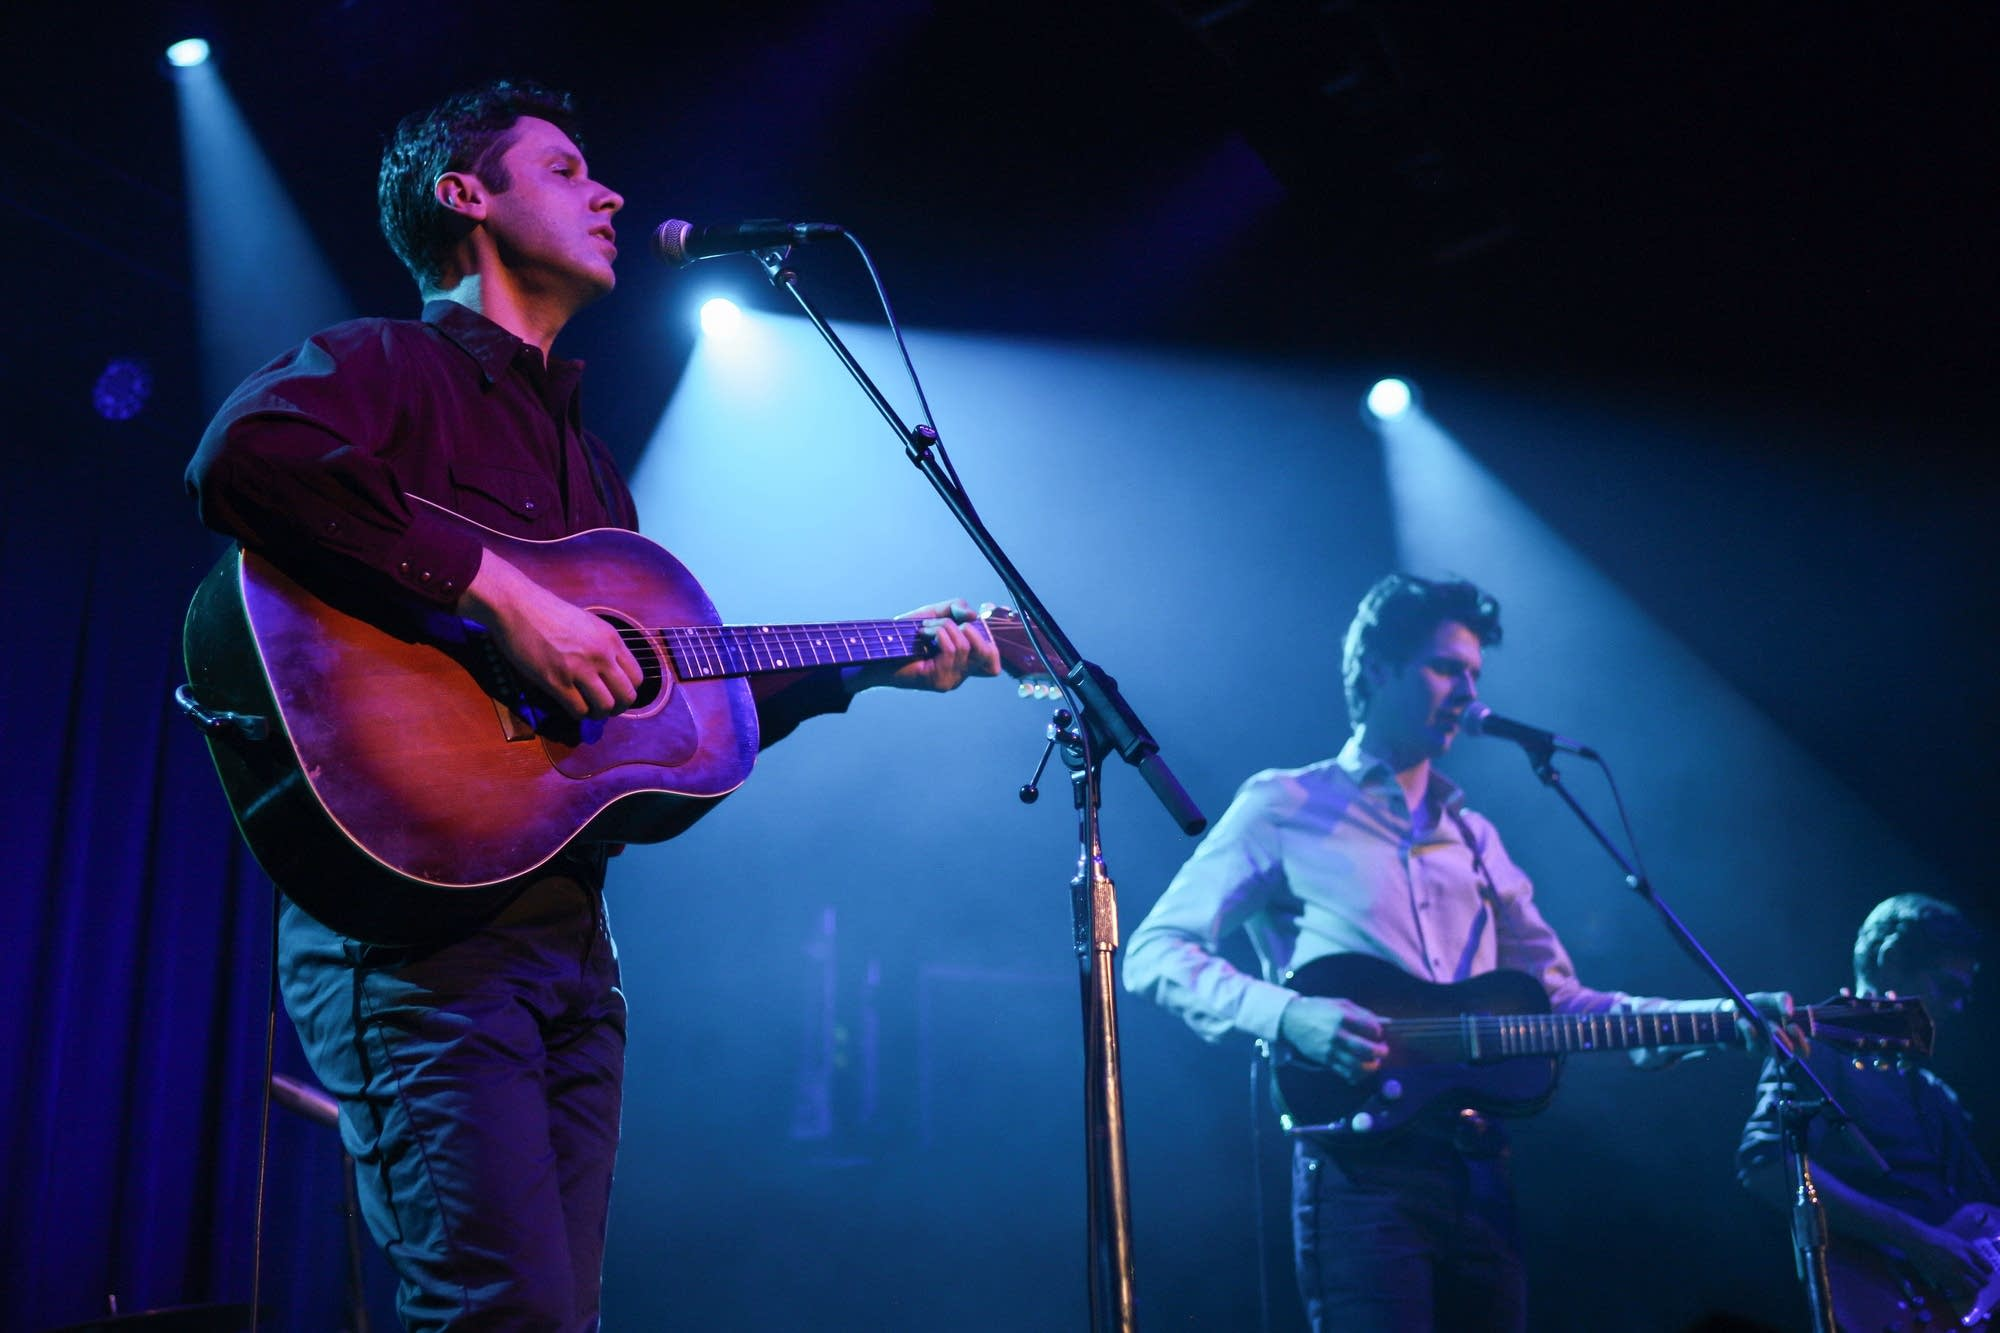 The Cactus Blossoms perform at United States of Americana birthday